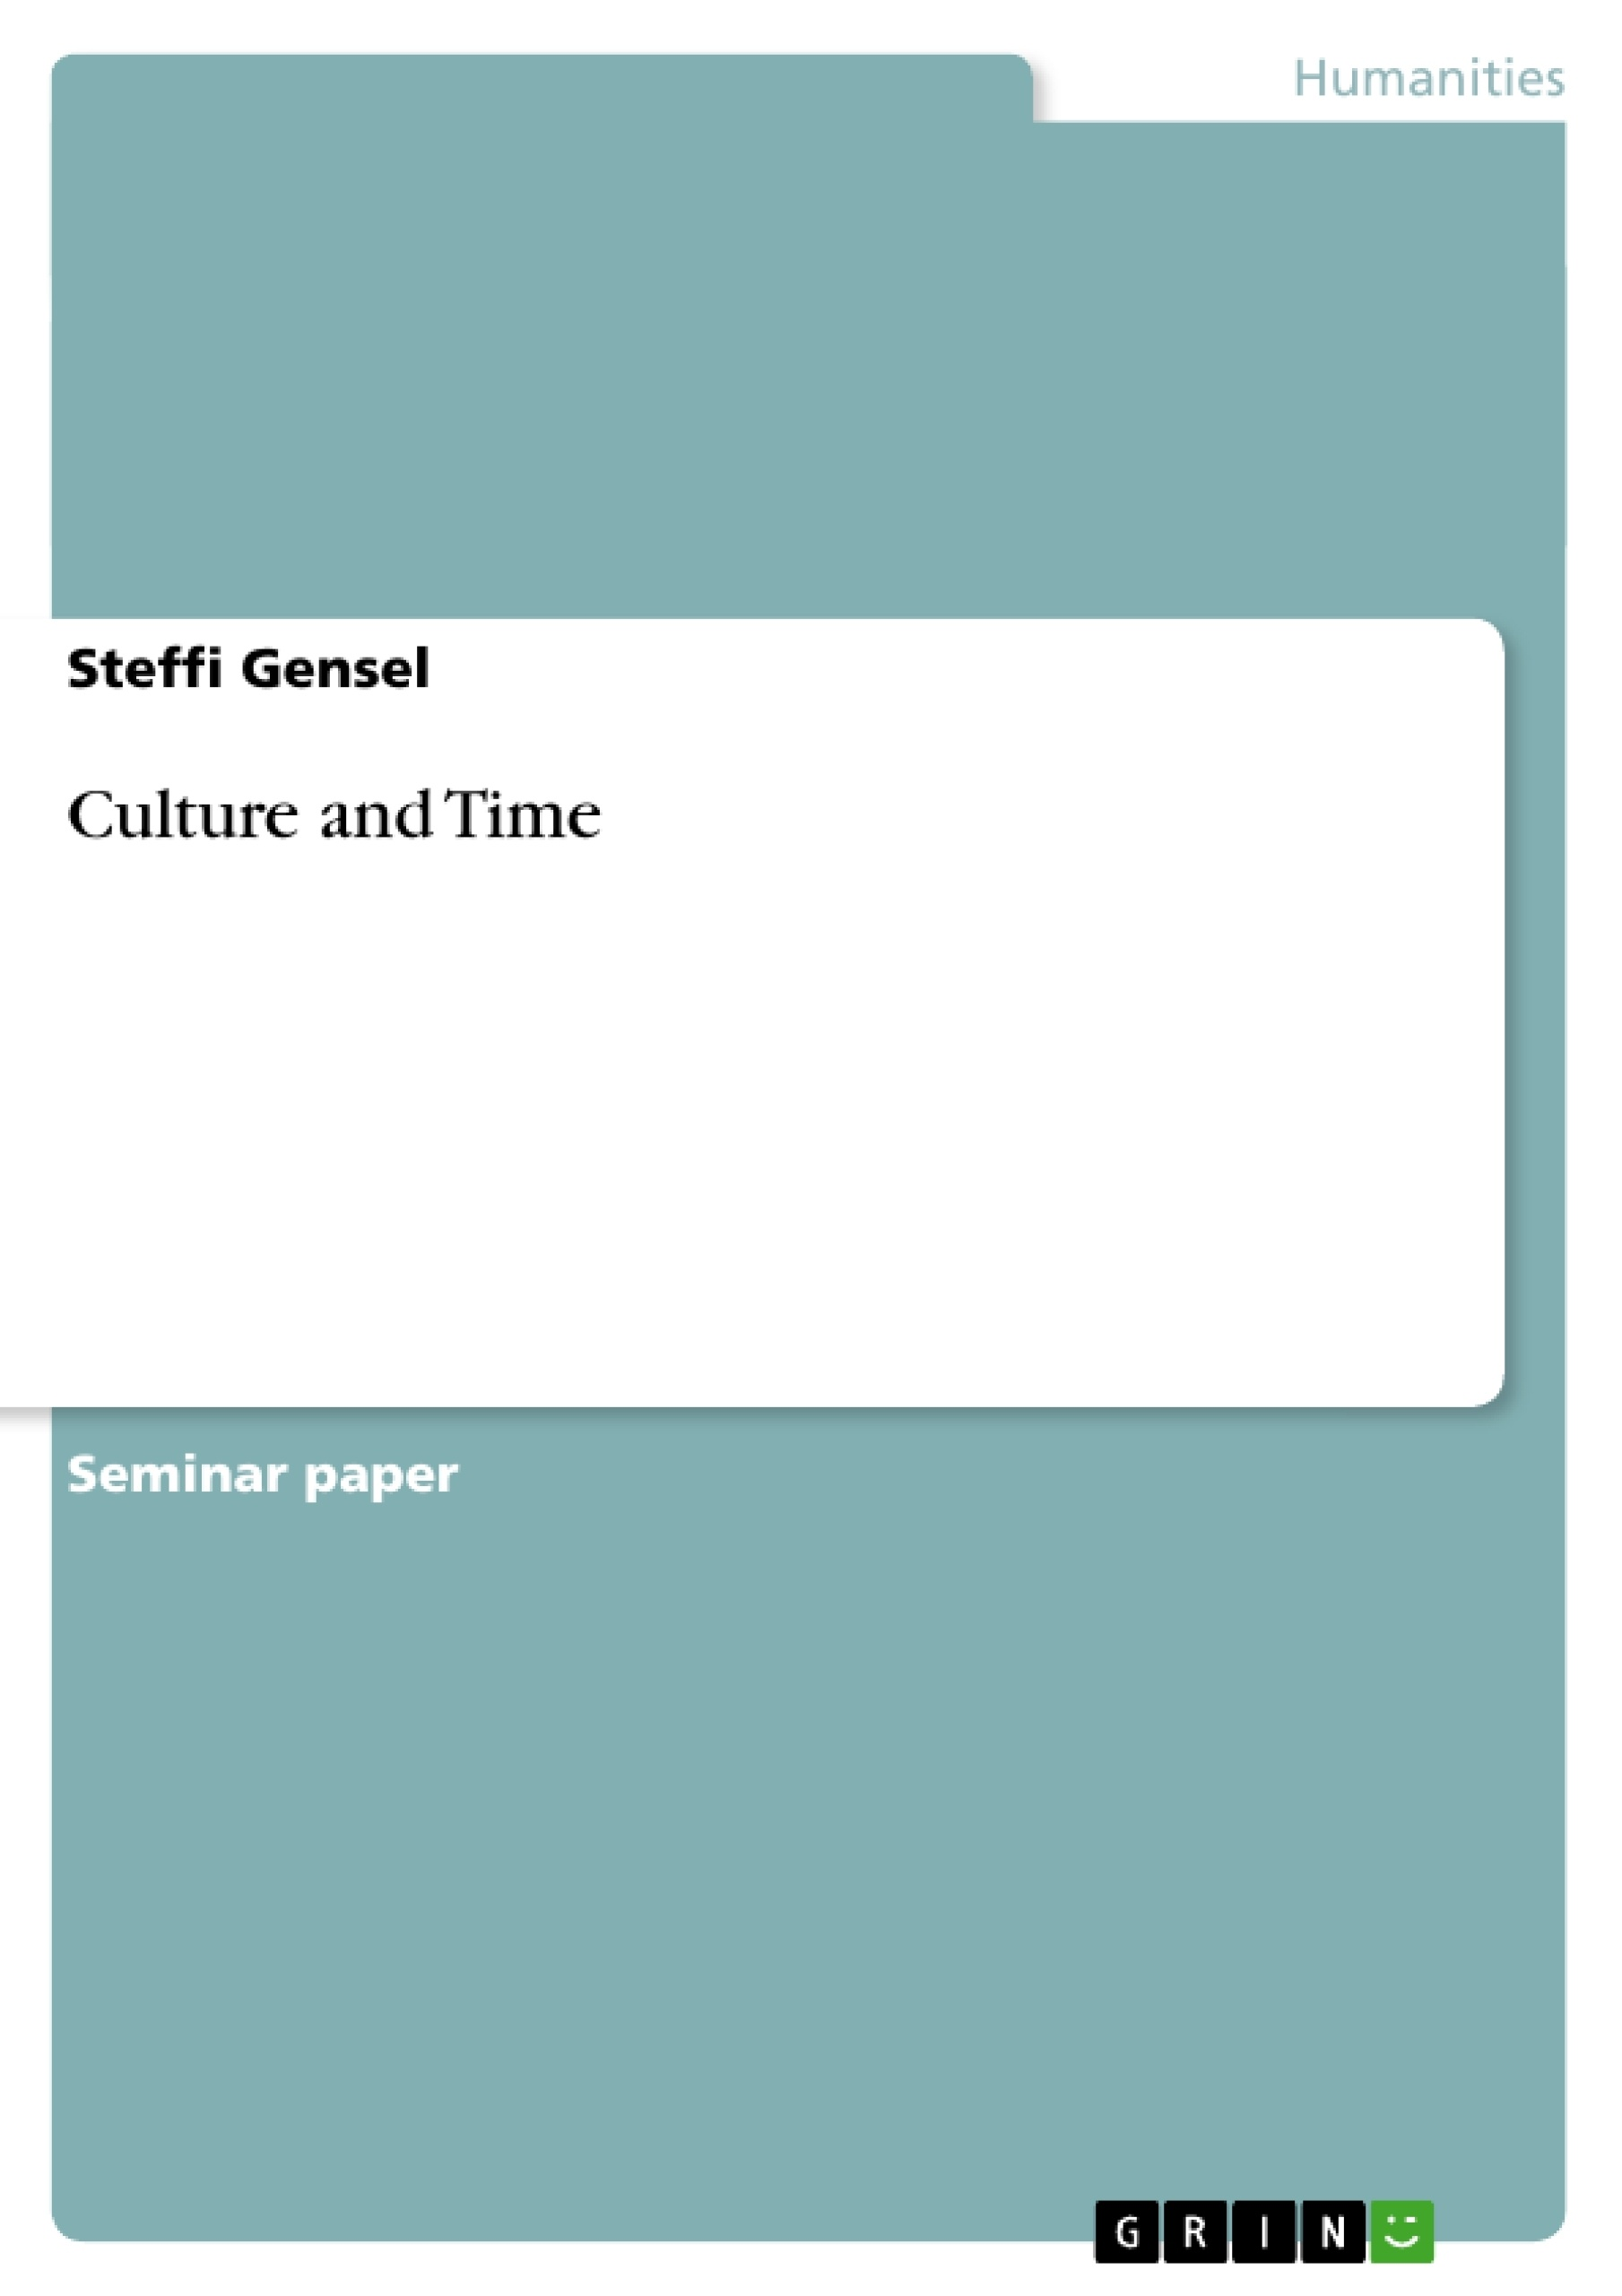 Title: Culture and Time